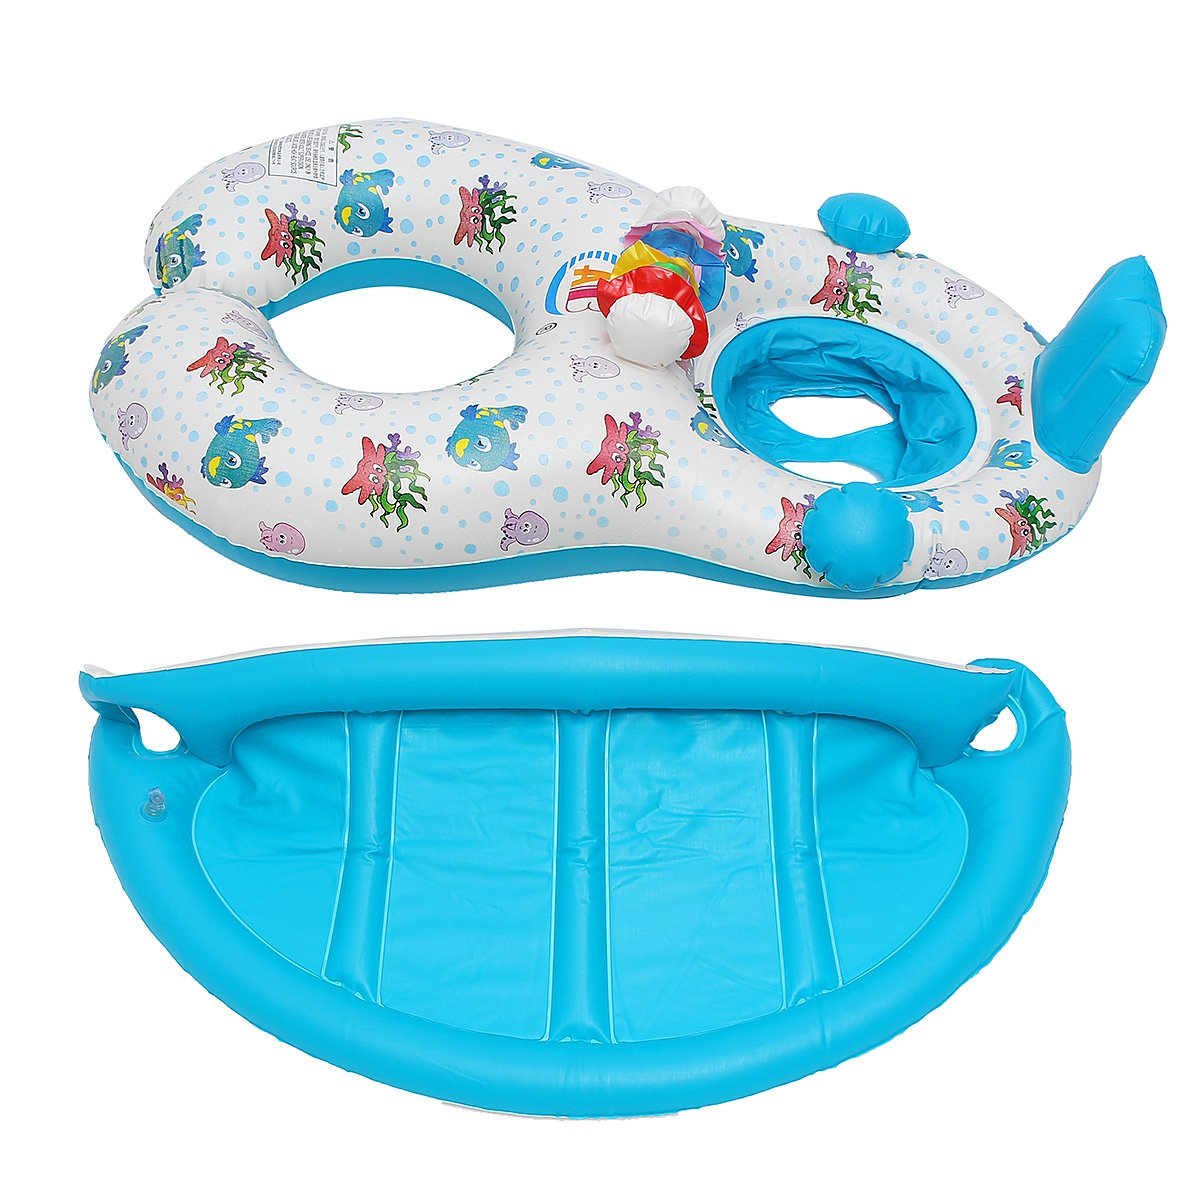 Water Sports WD Inflatable Mother Baby Swimming Ring Swim Pool Water Seat Float with Canopy Sunshade by Wincom Dishman (Image #8)